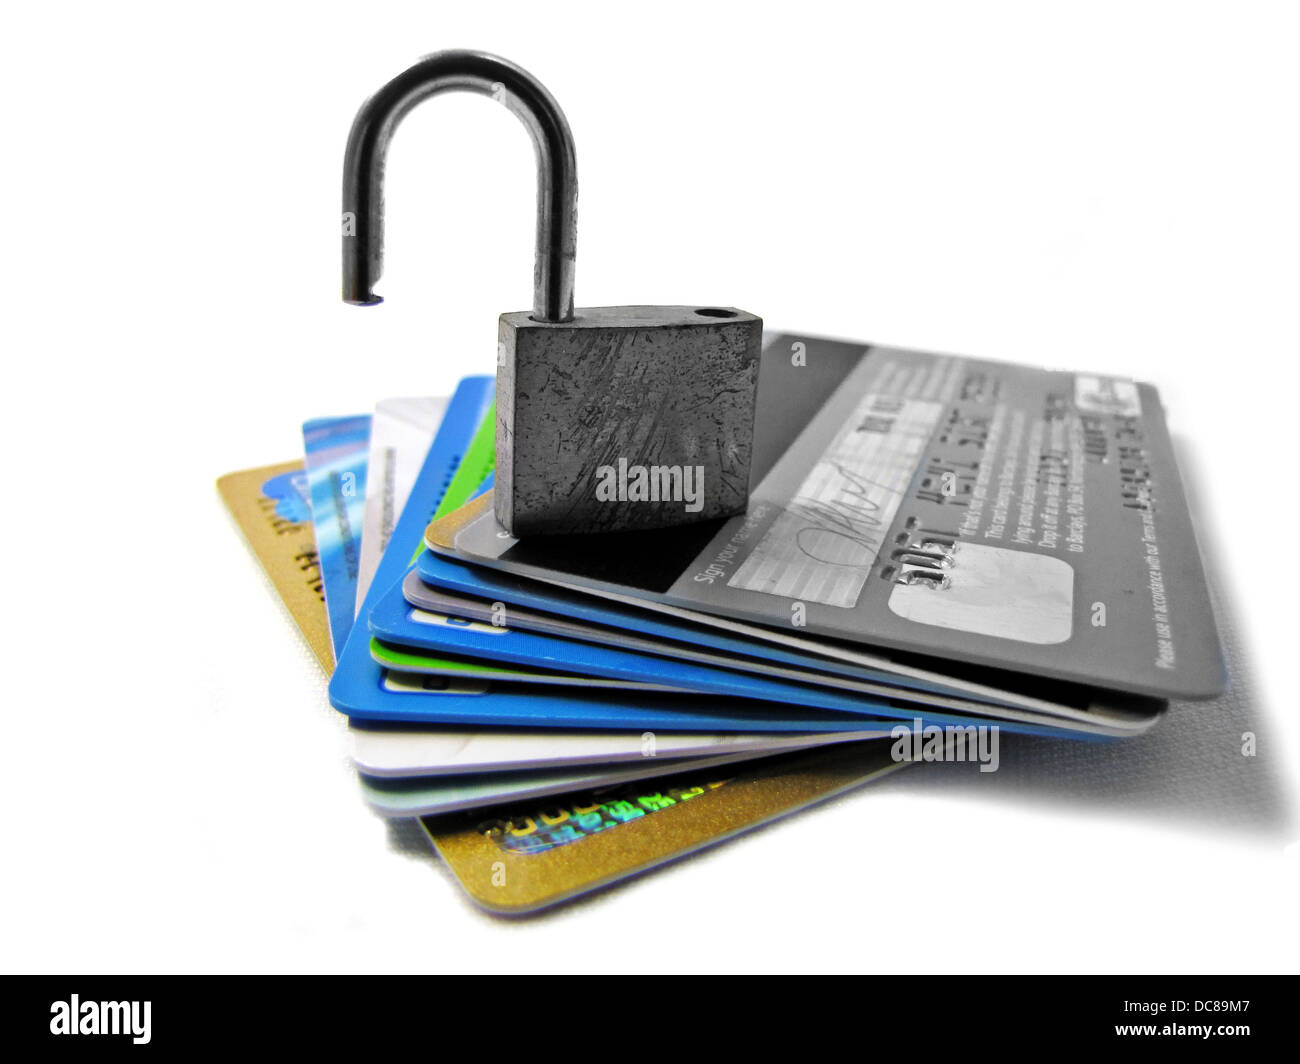 Unlocked and unsafe pin identity theft conceptual image - Stock Image